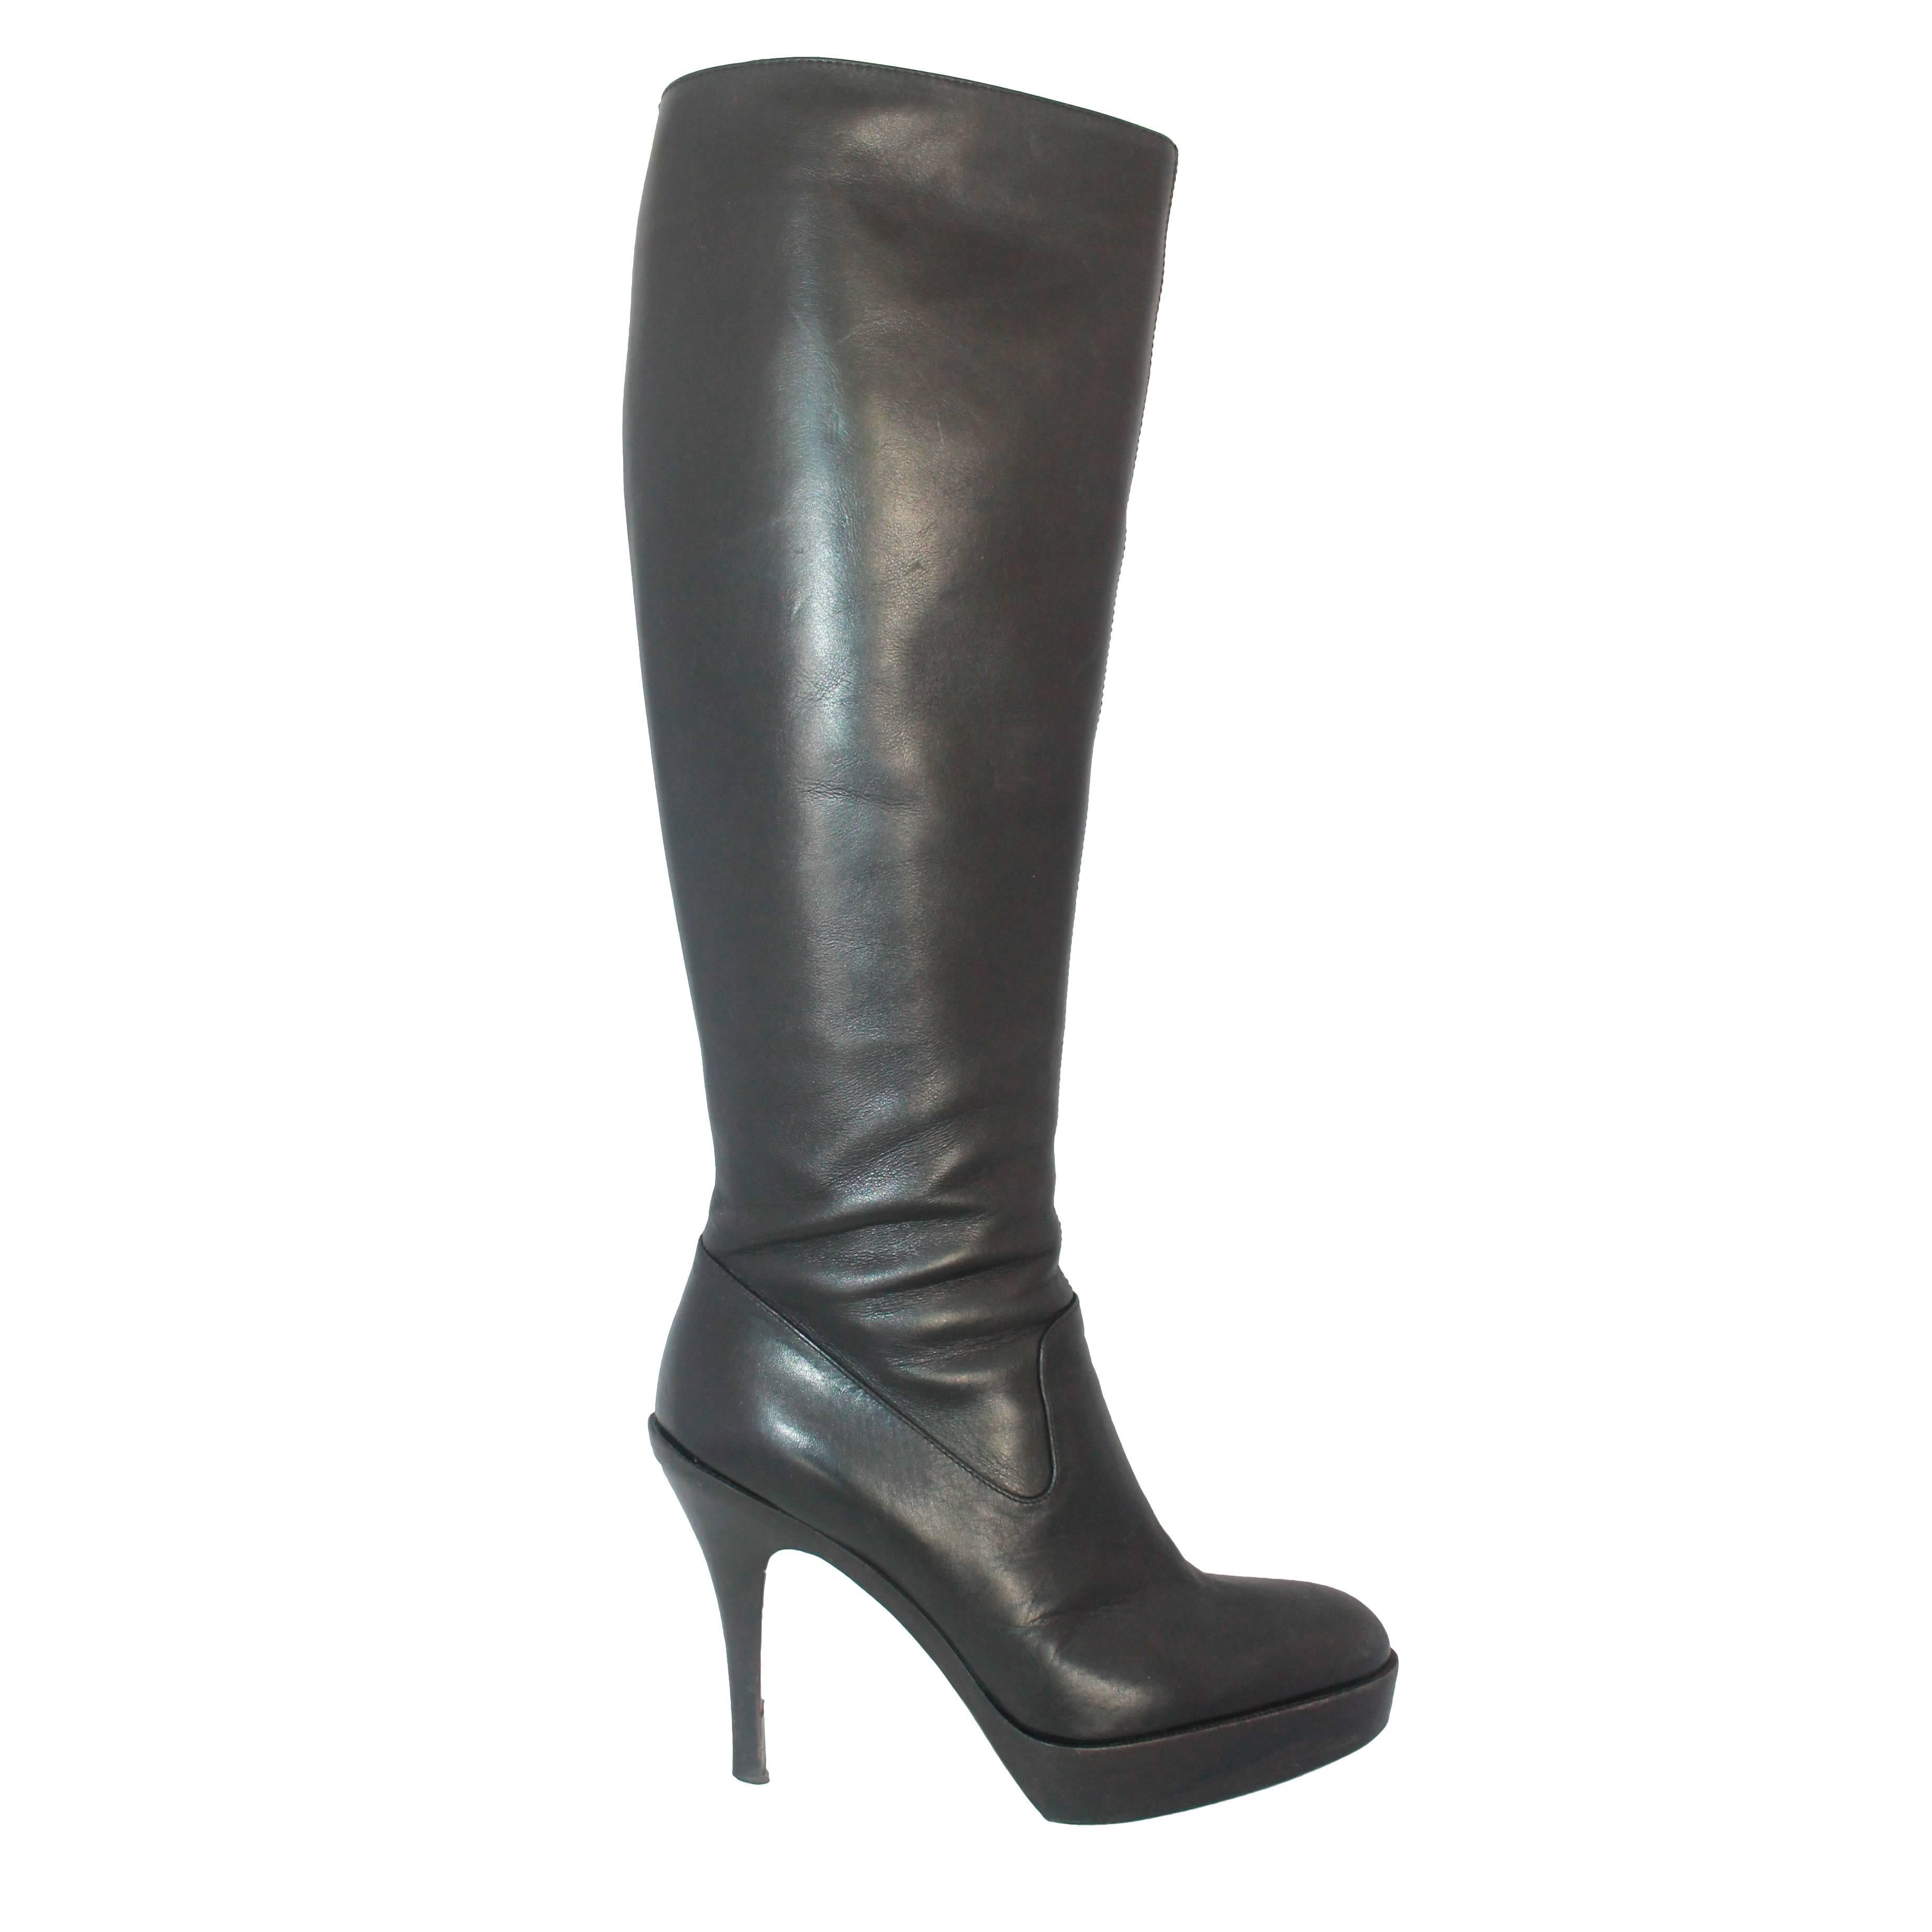 14438f9a374 Yves Saint Laurent Tan Knee High Boots